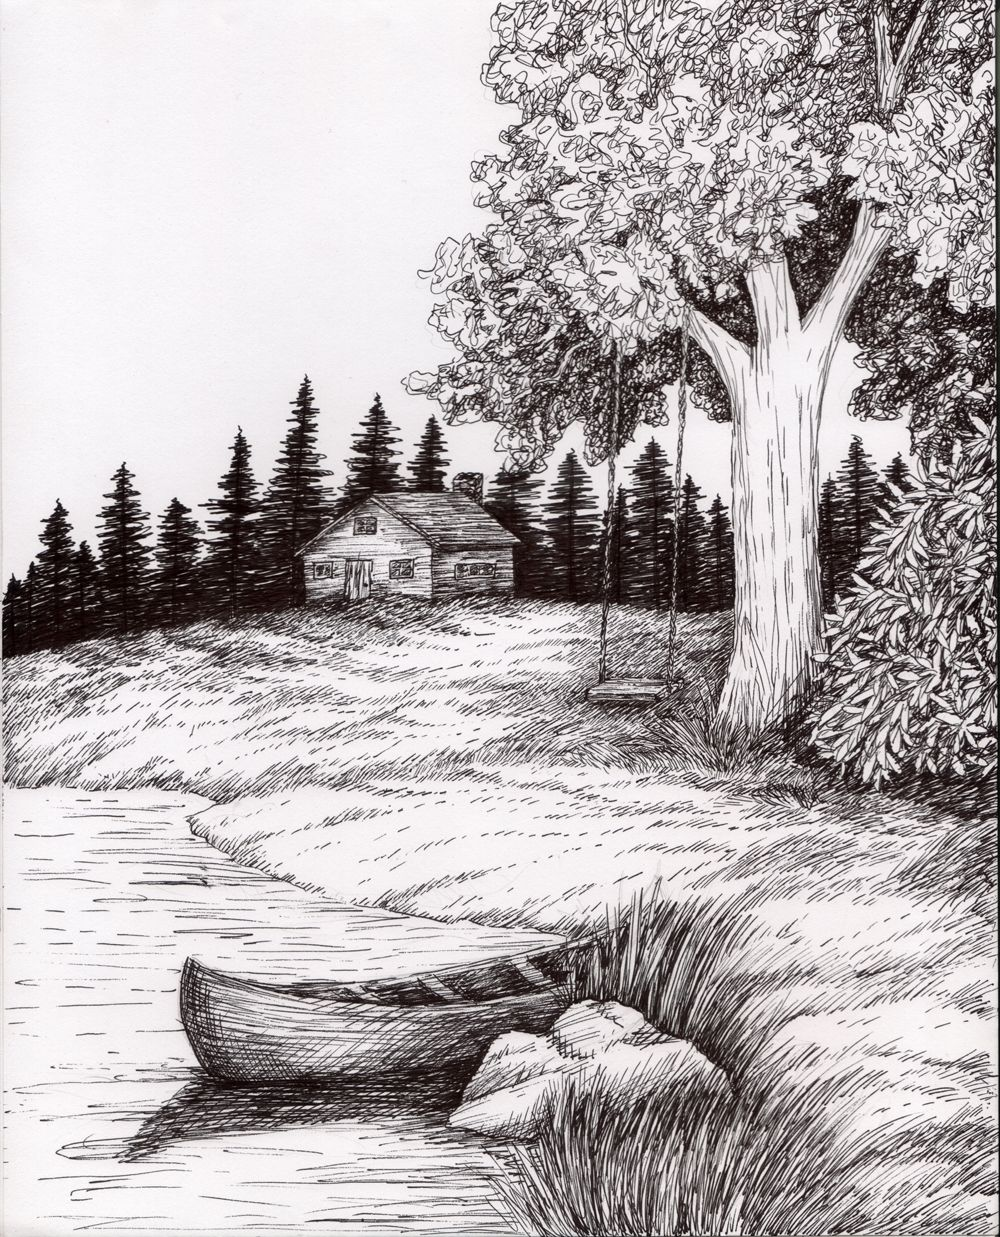 Pen and ink wash landscape pen and ink landscape for Fish scenery drawing